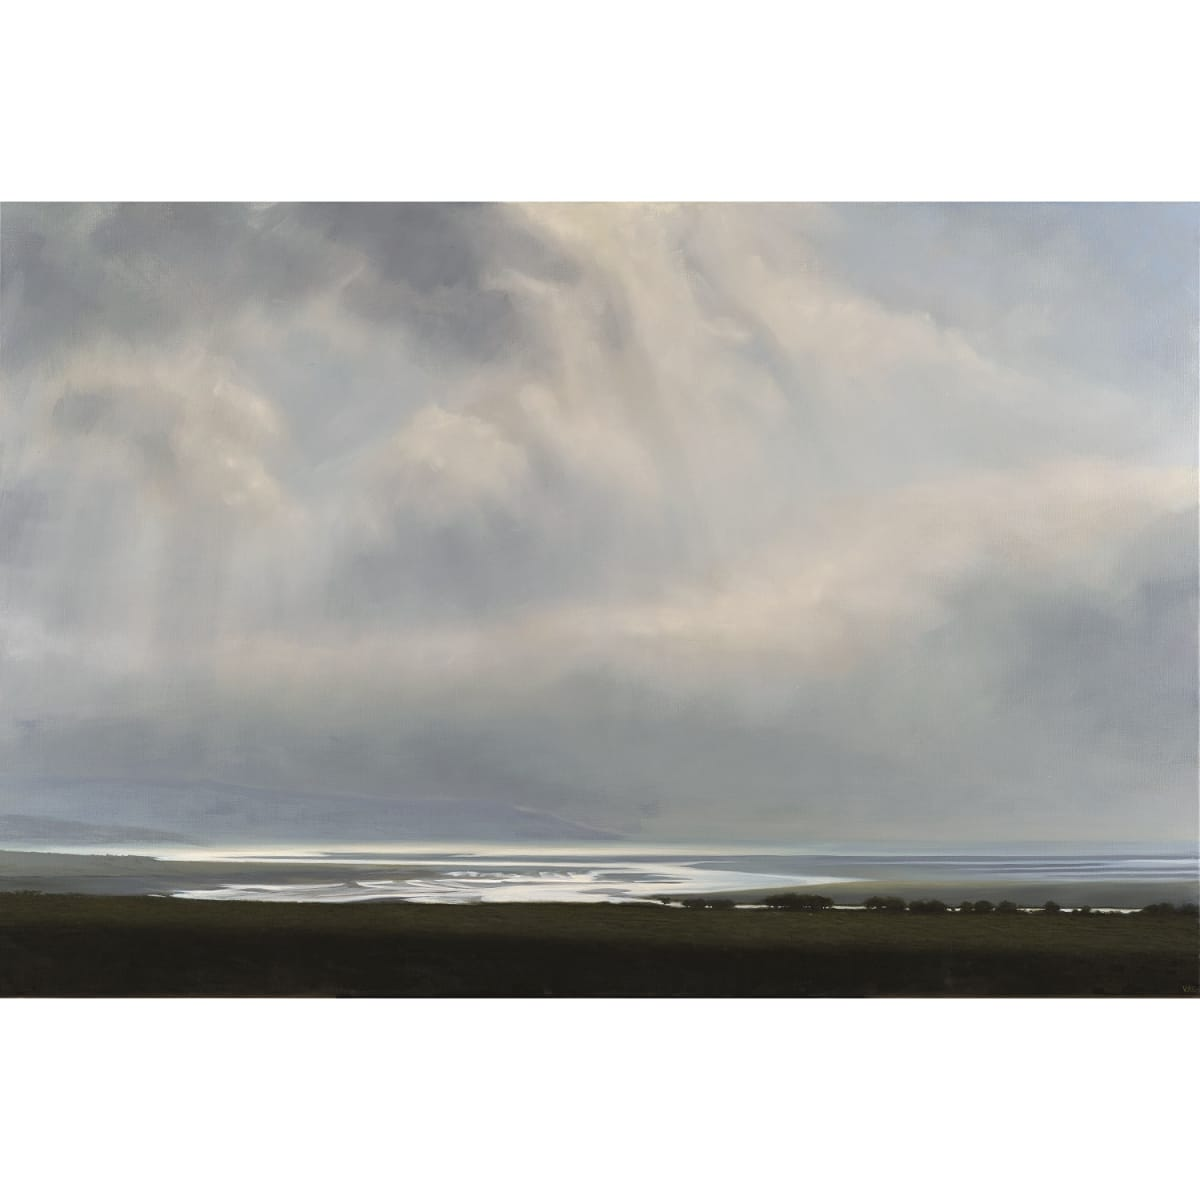 Victoria Orr Ewing Estuary, ebbing tide, Luce Bay, 2019 initialled; titled, initialled and dated '19 verso oil on canvas 146 x 97 cm